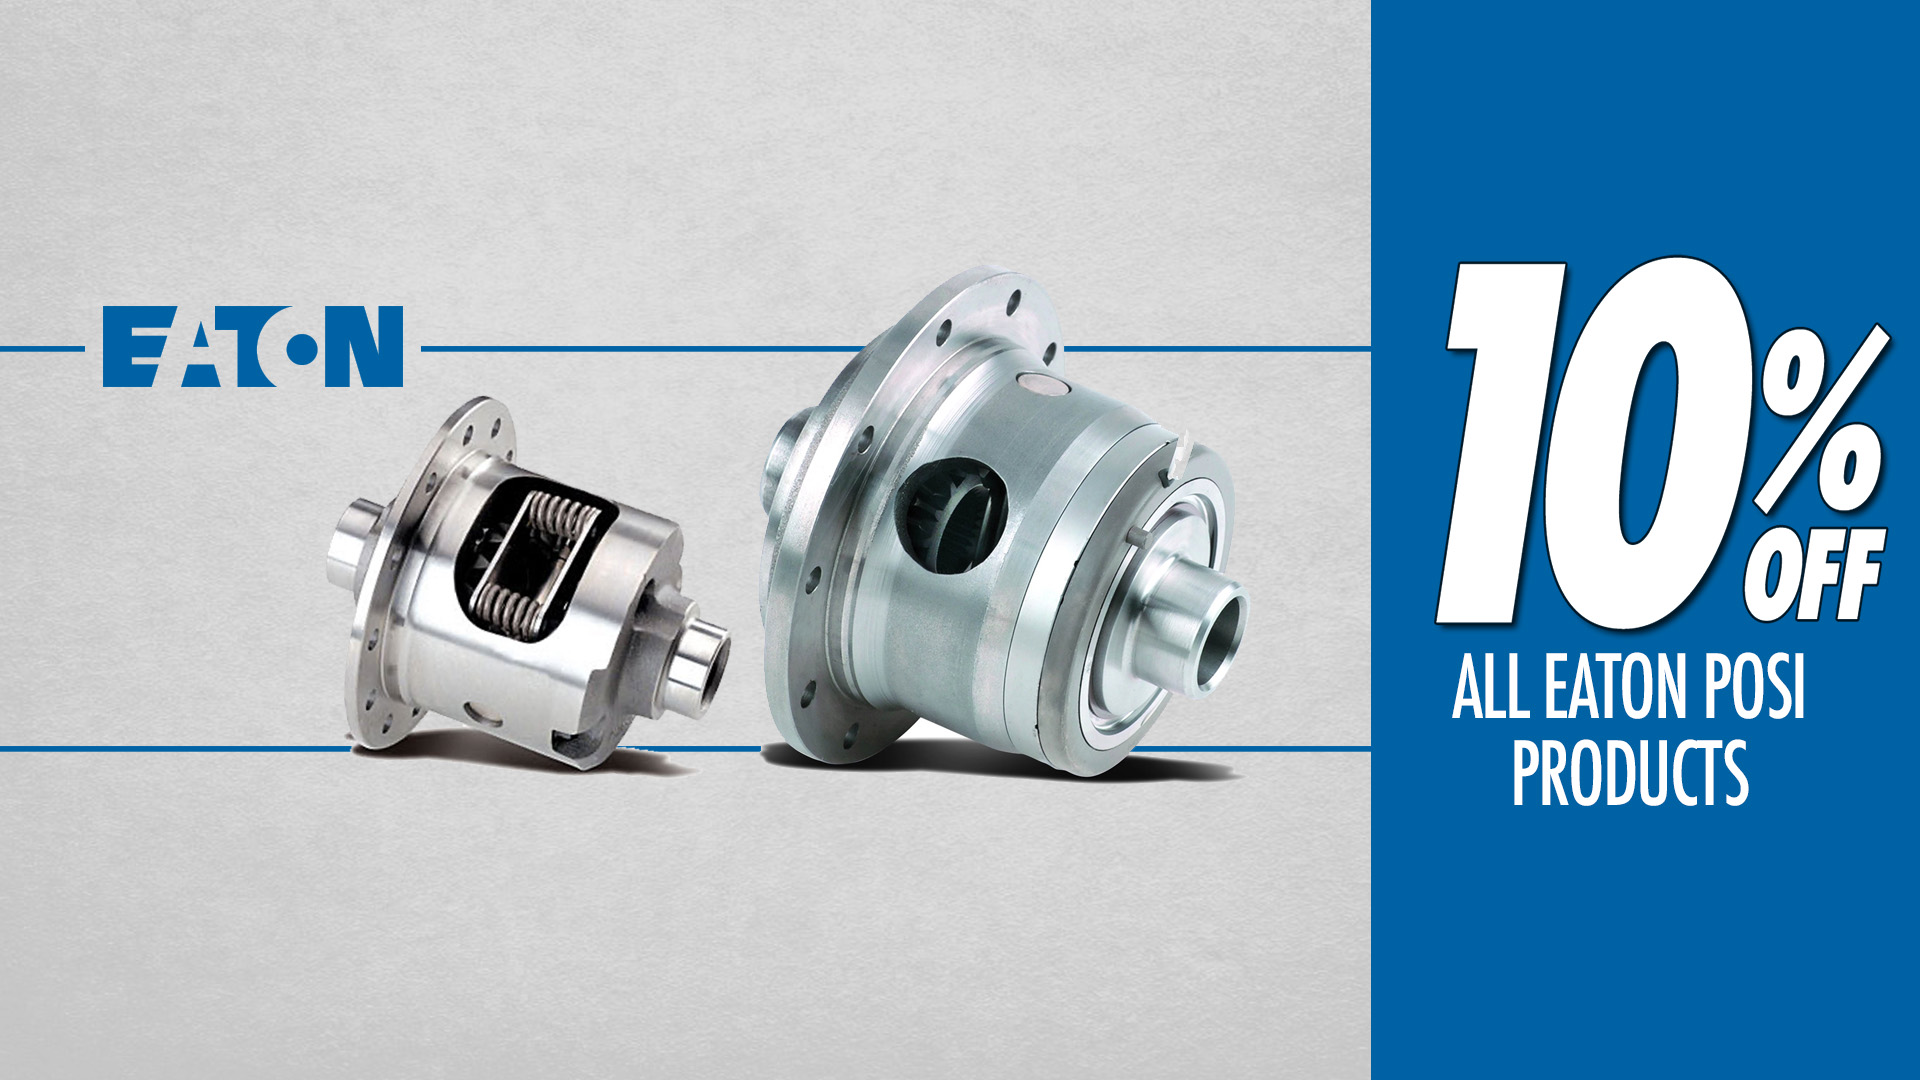 Save 10% on All Eaton Posi Products